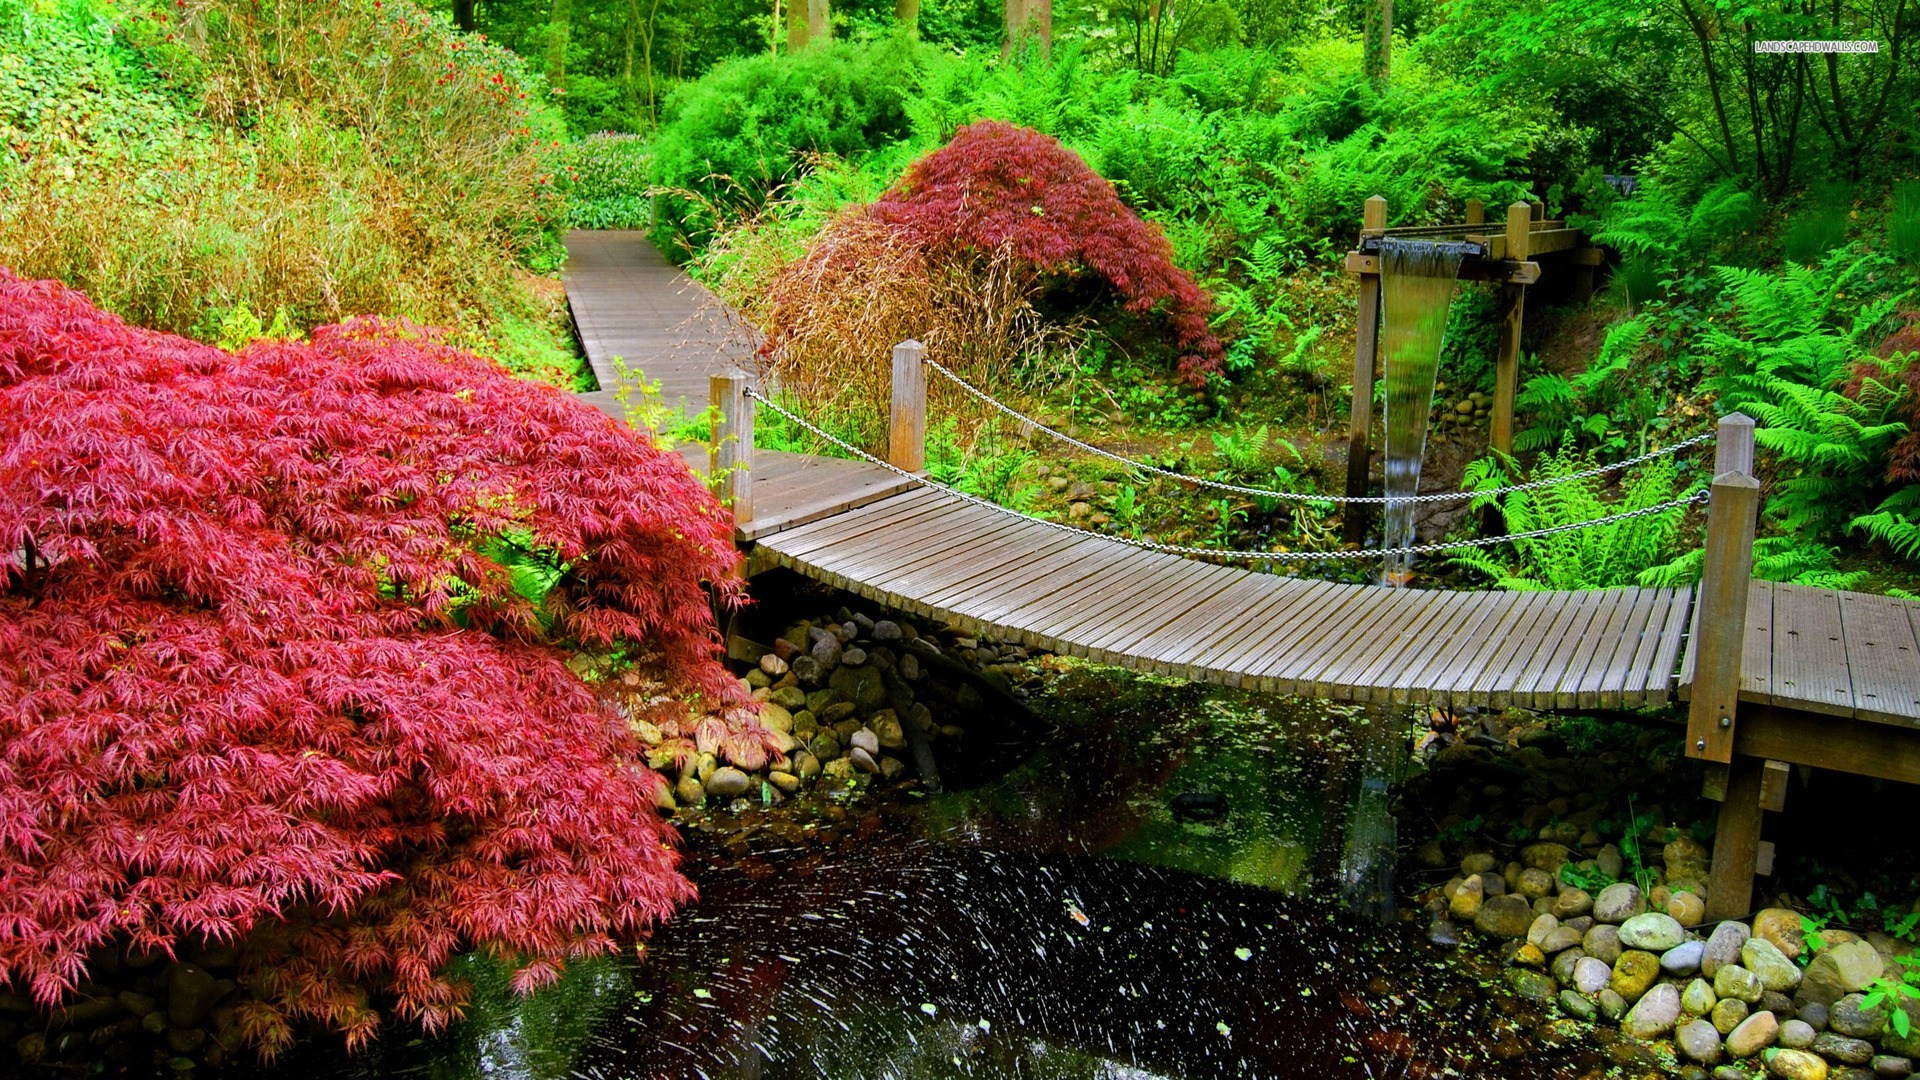 1920x1080 japanese garden wallpaper night amazing design 413852 inspiration